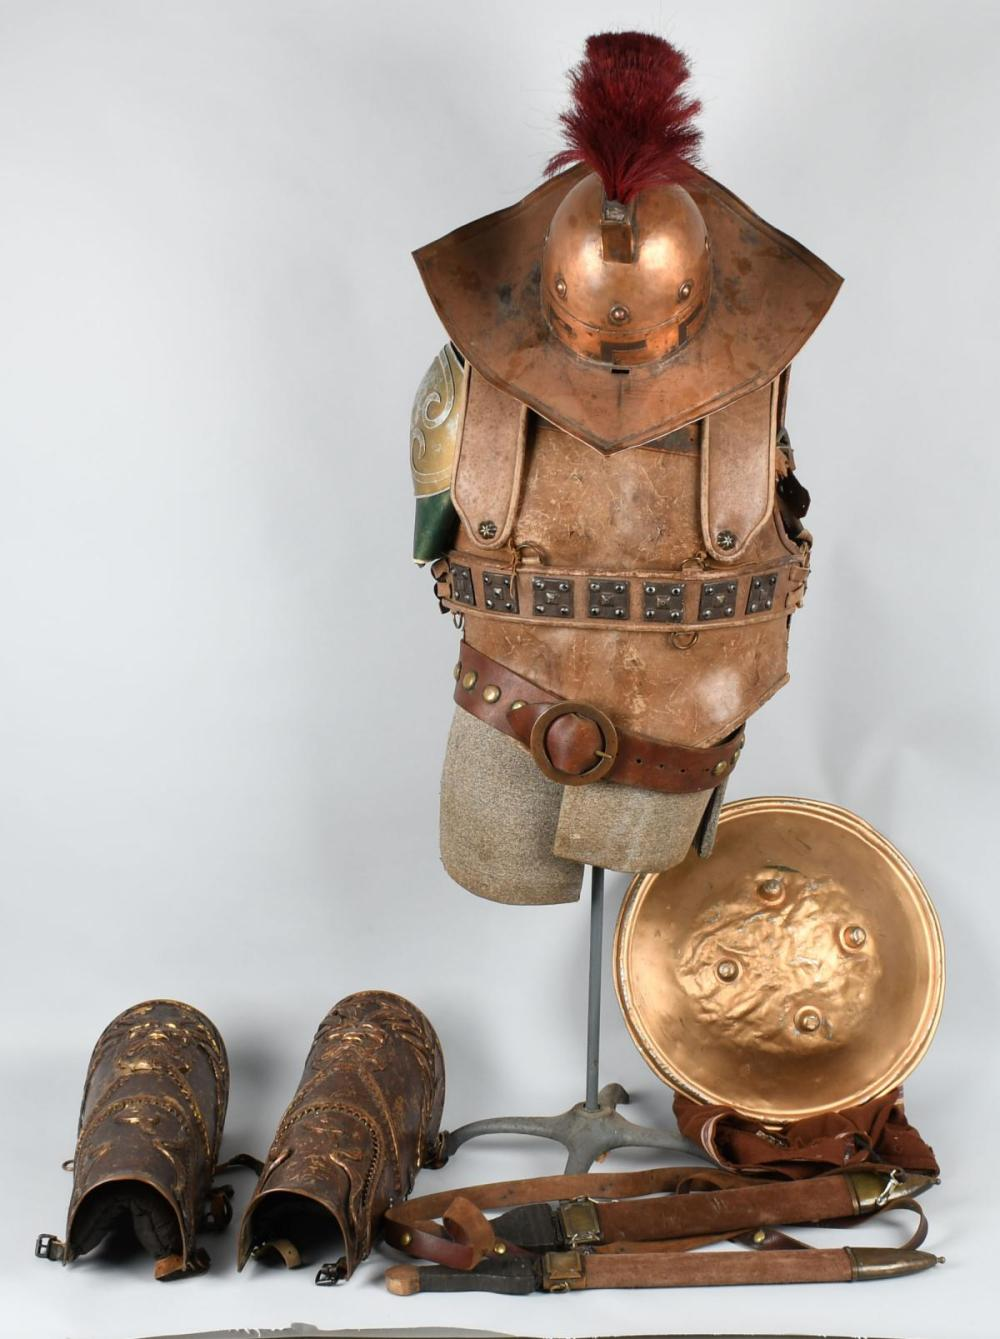 1953 THE ROBE ROMAN SOLDIER OUTFIT MOVIE PROP